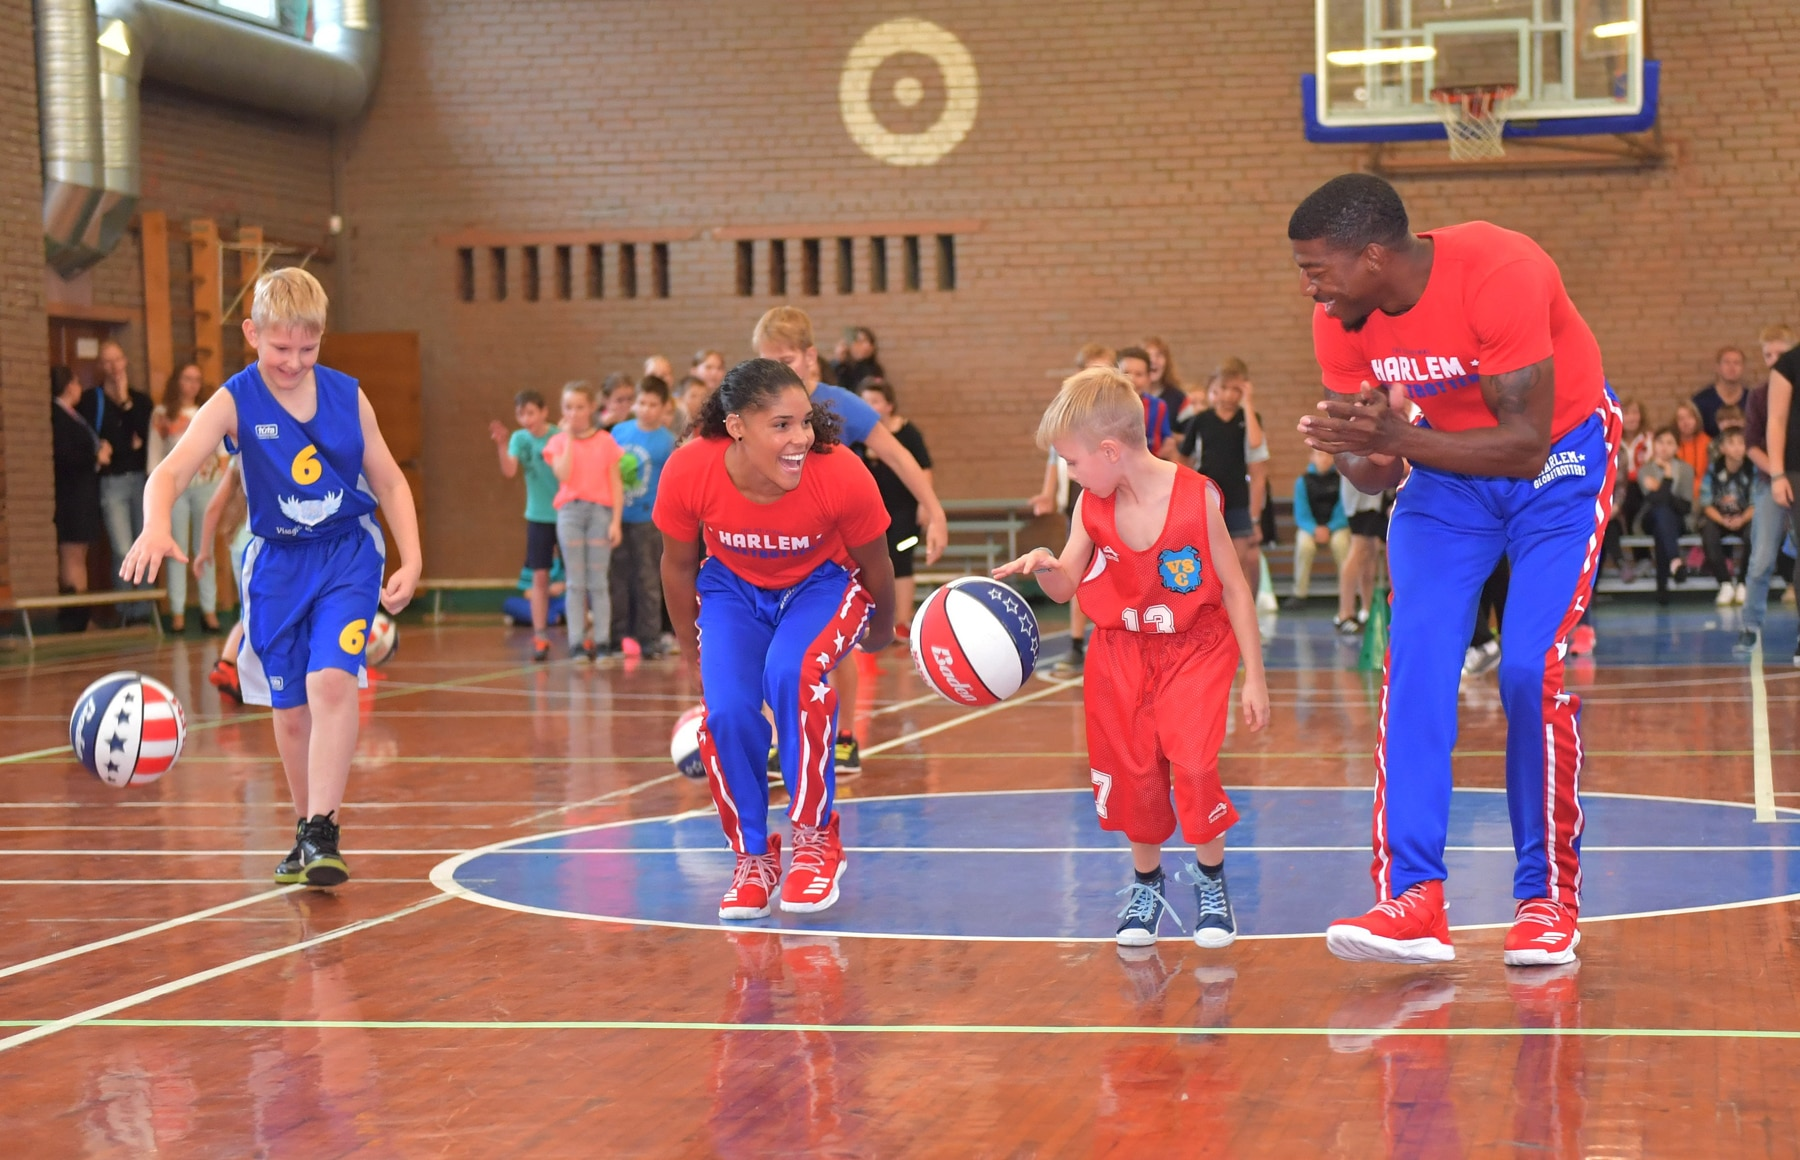 Harlem Globetrotters basketball players dribbling the ball down the court with young children (© Brett Meister/Harlem Globetrotters)